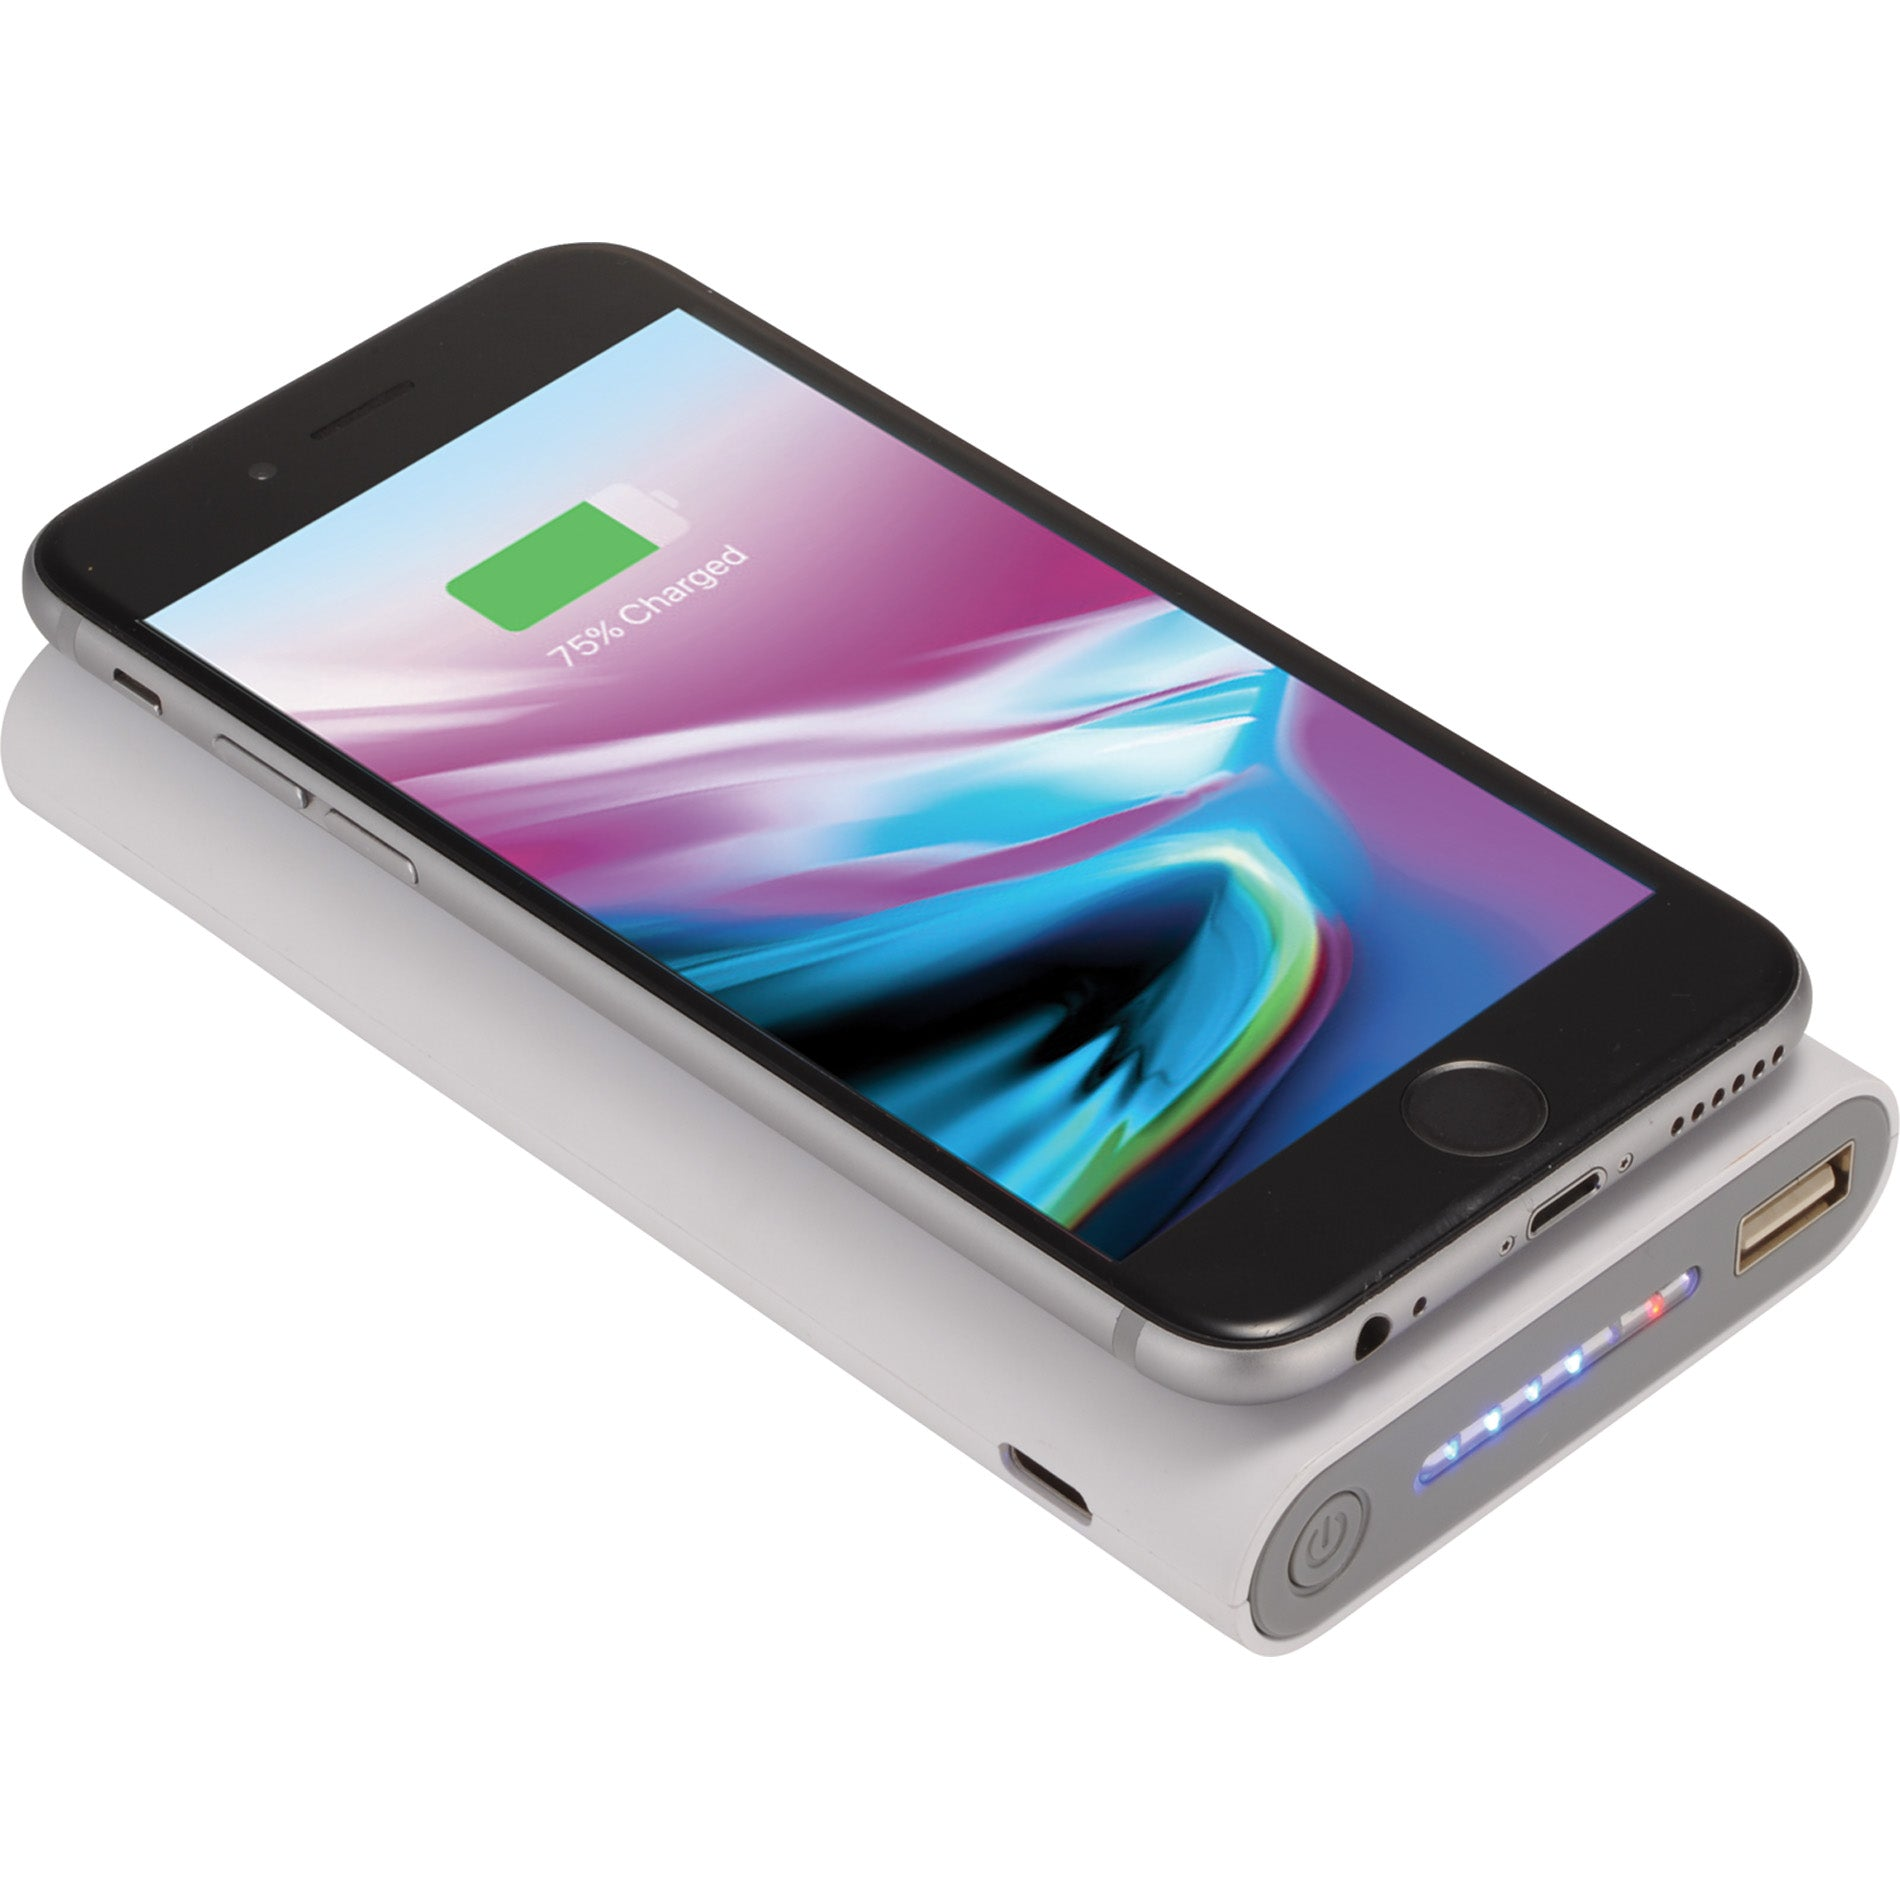 LEEDS UL LISTED BLEND 4,000 MAH WIRELESS POWER BANK